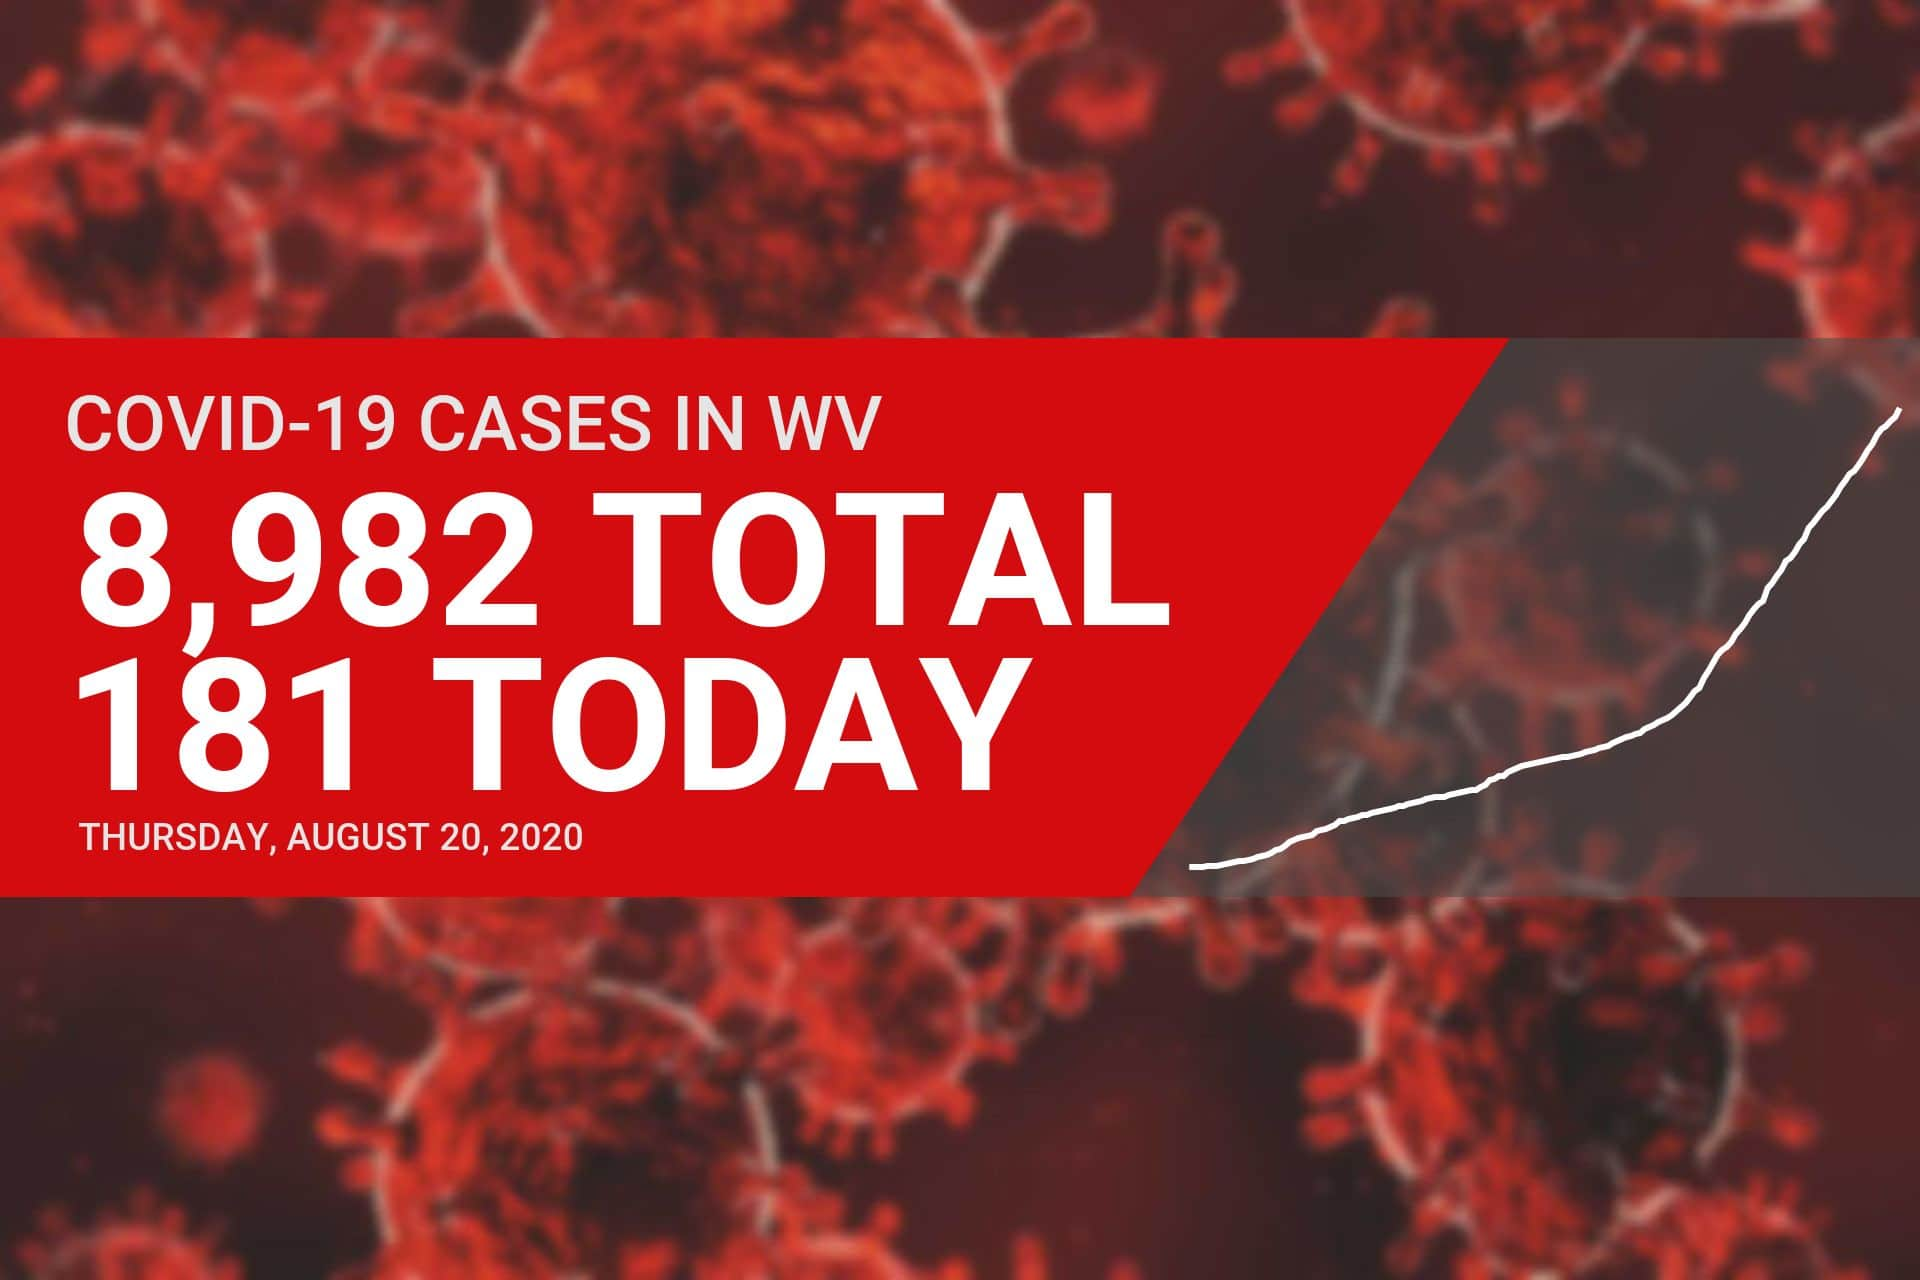 181 new cases of COVID-19 reported in West Virginia on Thursday